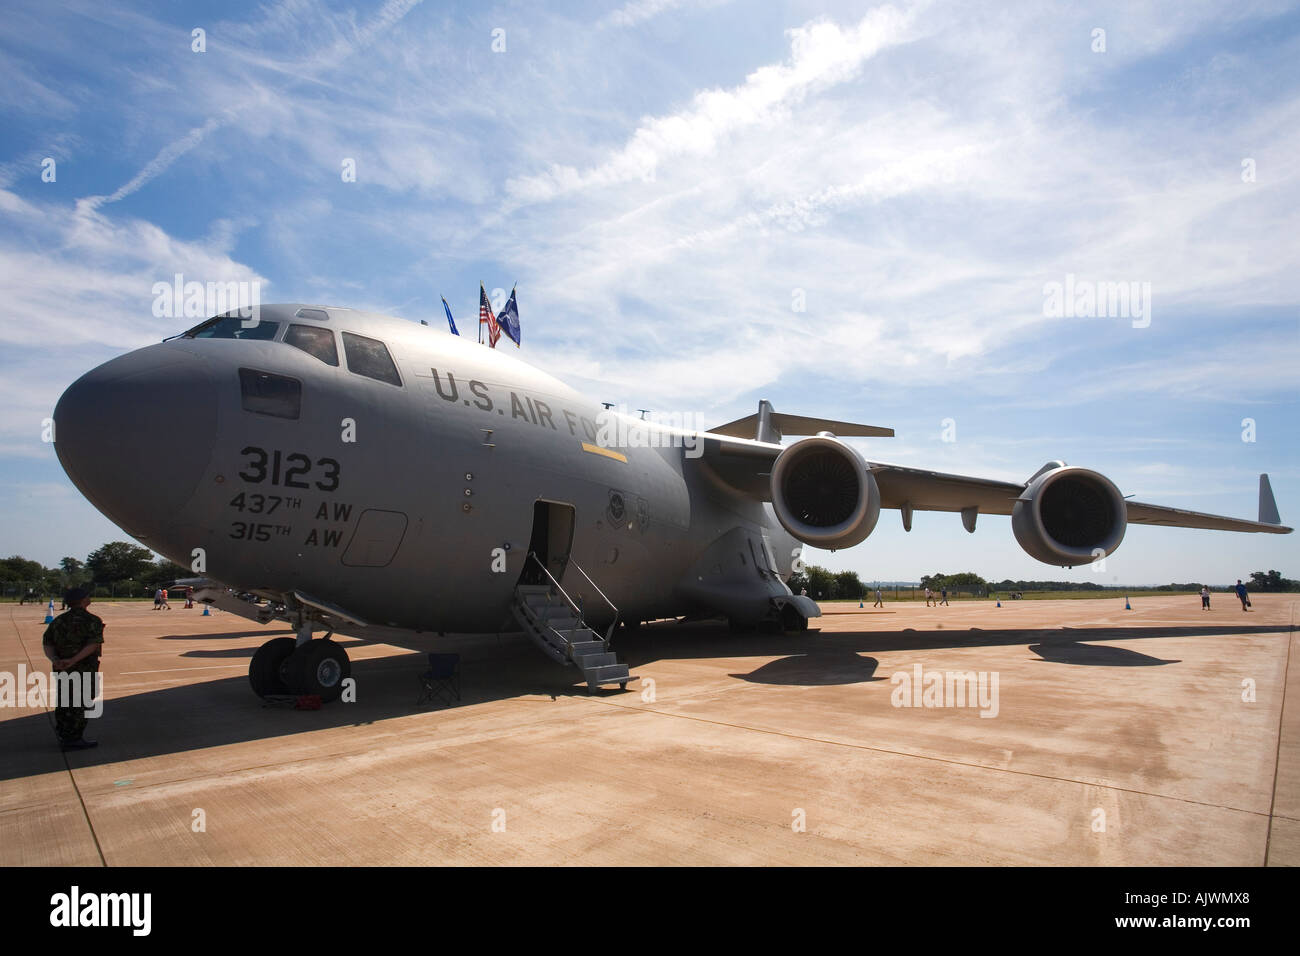 Boeing C-17A Globemaster  US Air Force at Fairford RAF International Air Show Gloucestershire airshow  2006 - Stock Image